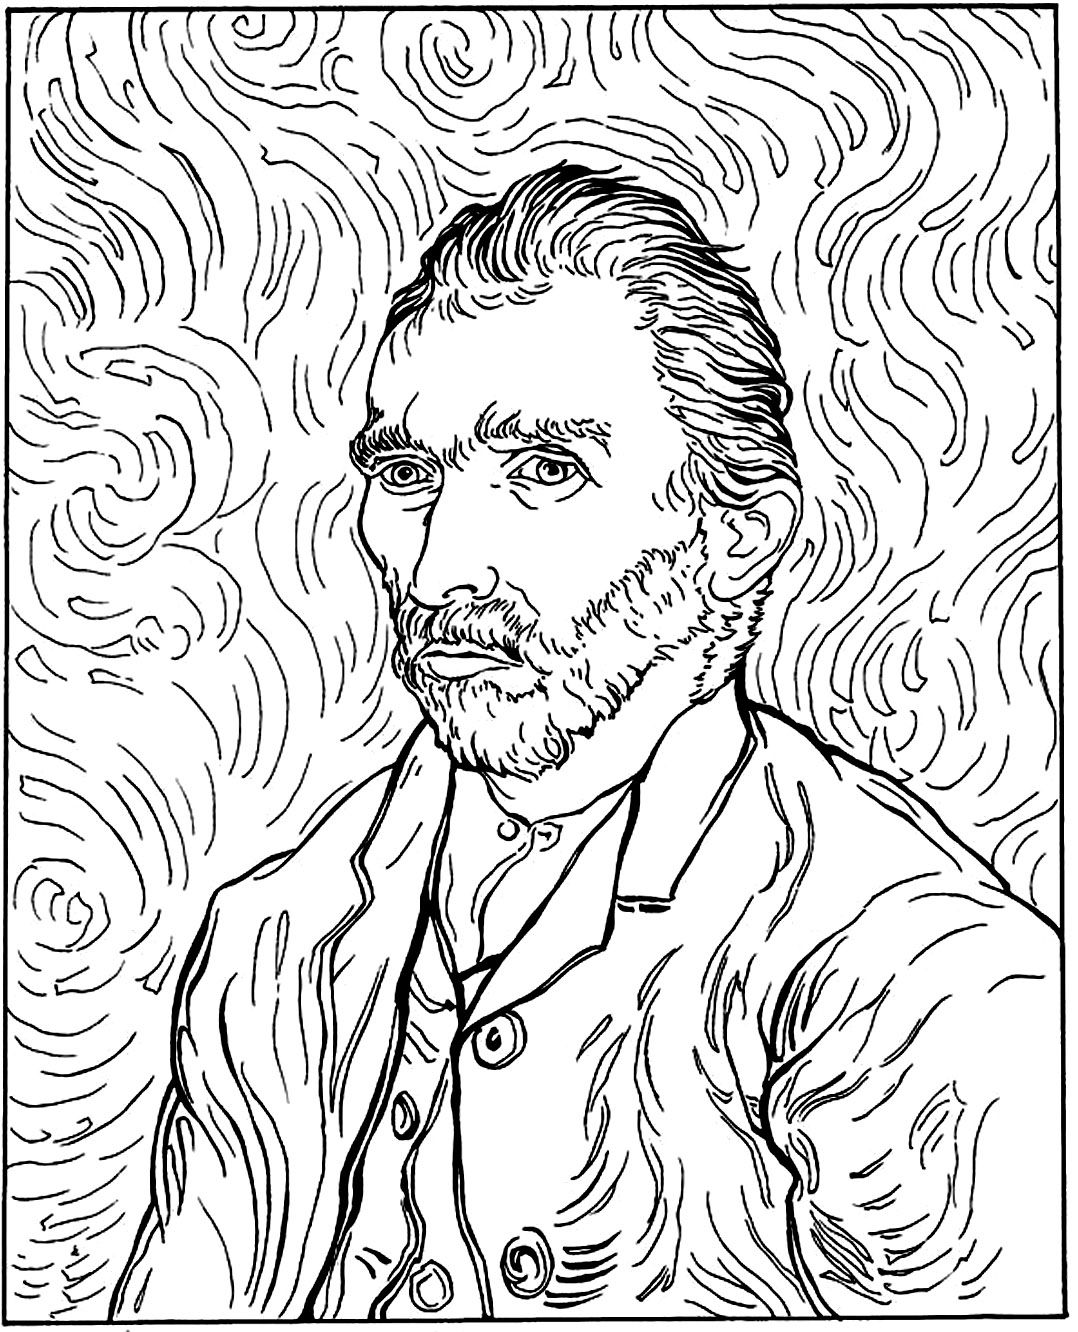 Free Coloring Page Coloring Adult Van Gogh Autoportrait Coloring Adult Van Gogh Autoportrait